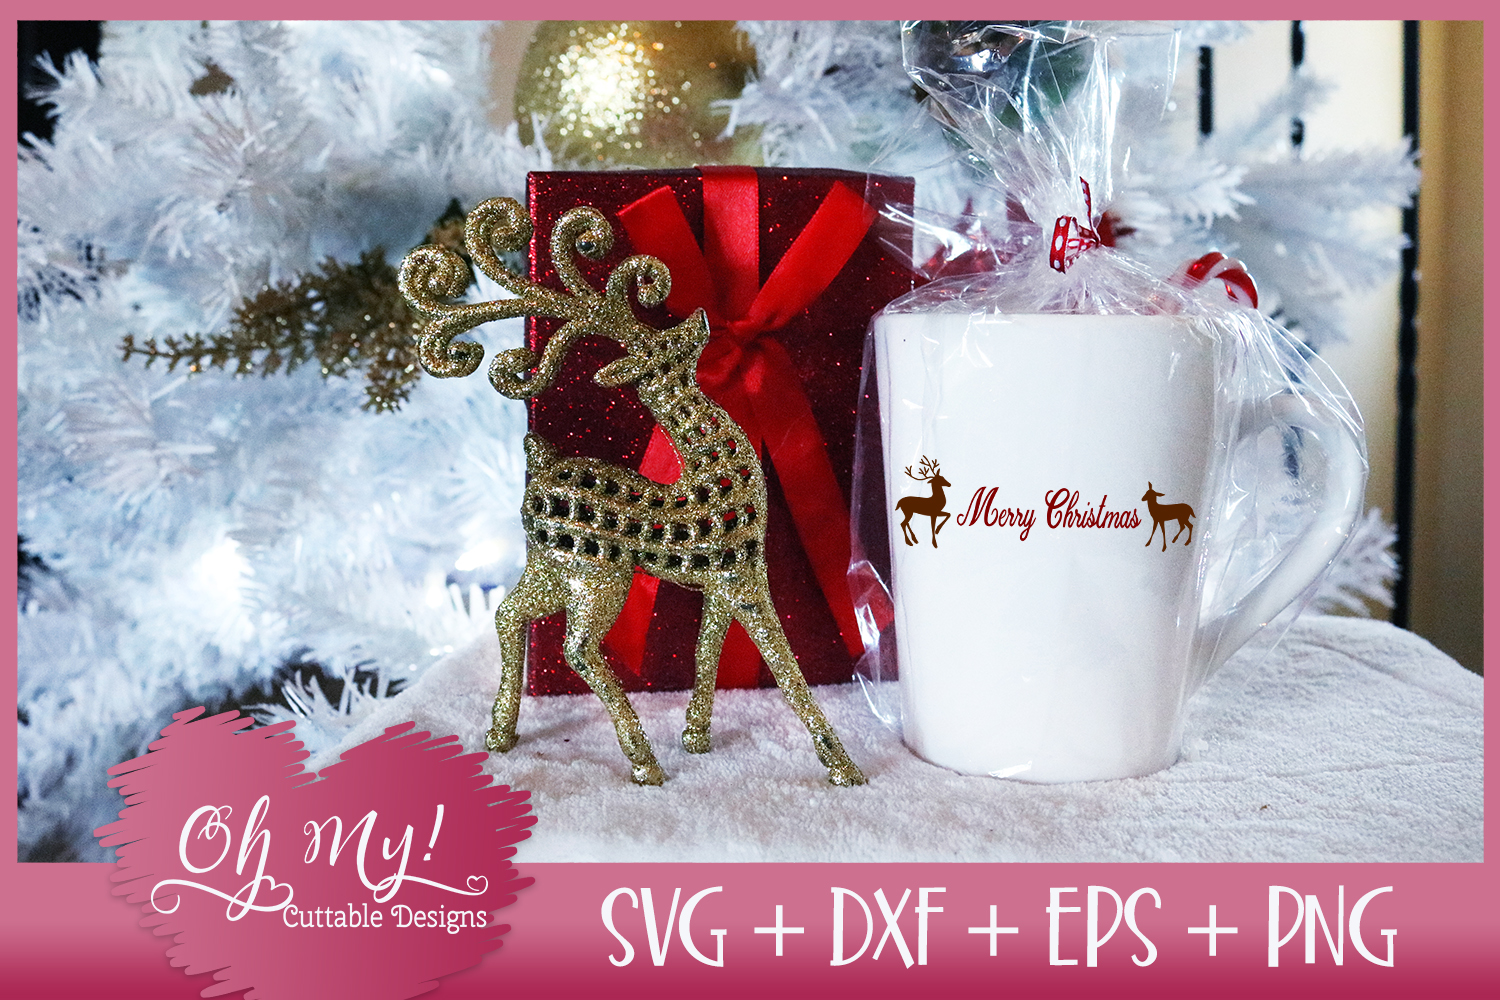 Merry Christmas Reindeer - SVG DXF EPS PNG example image 2